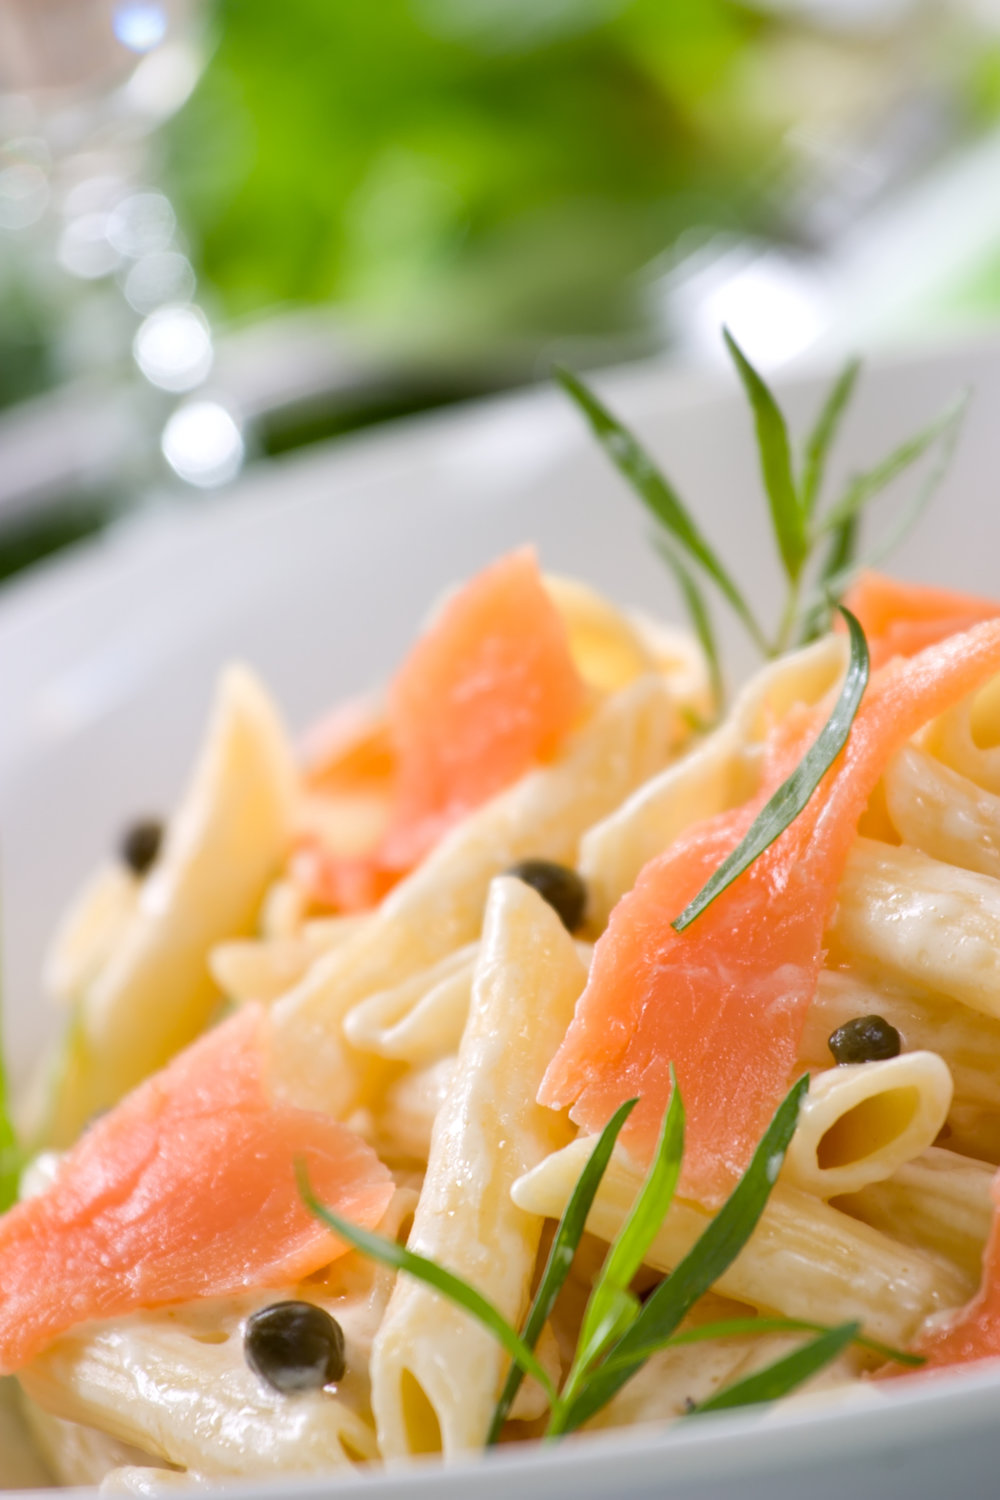 Online Personal Trainer Lunch Recipes - Salmon & Prawn Penne Salad.jpg